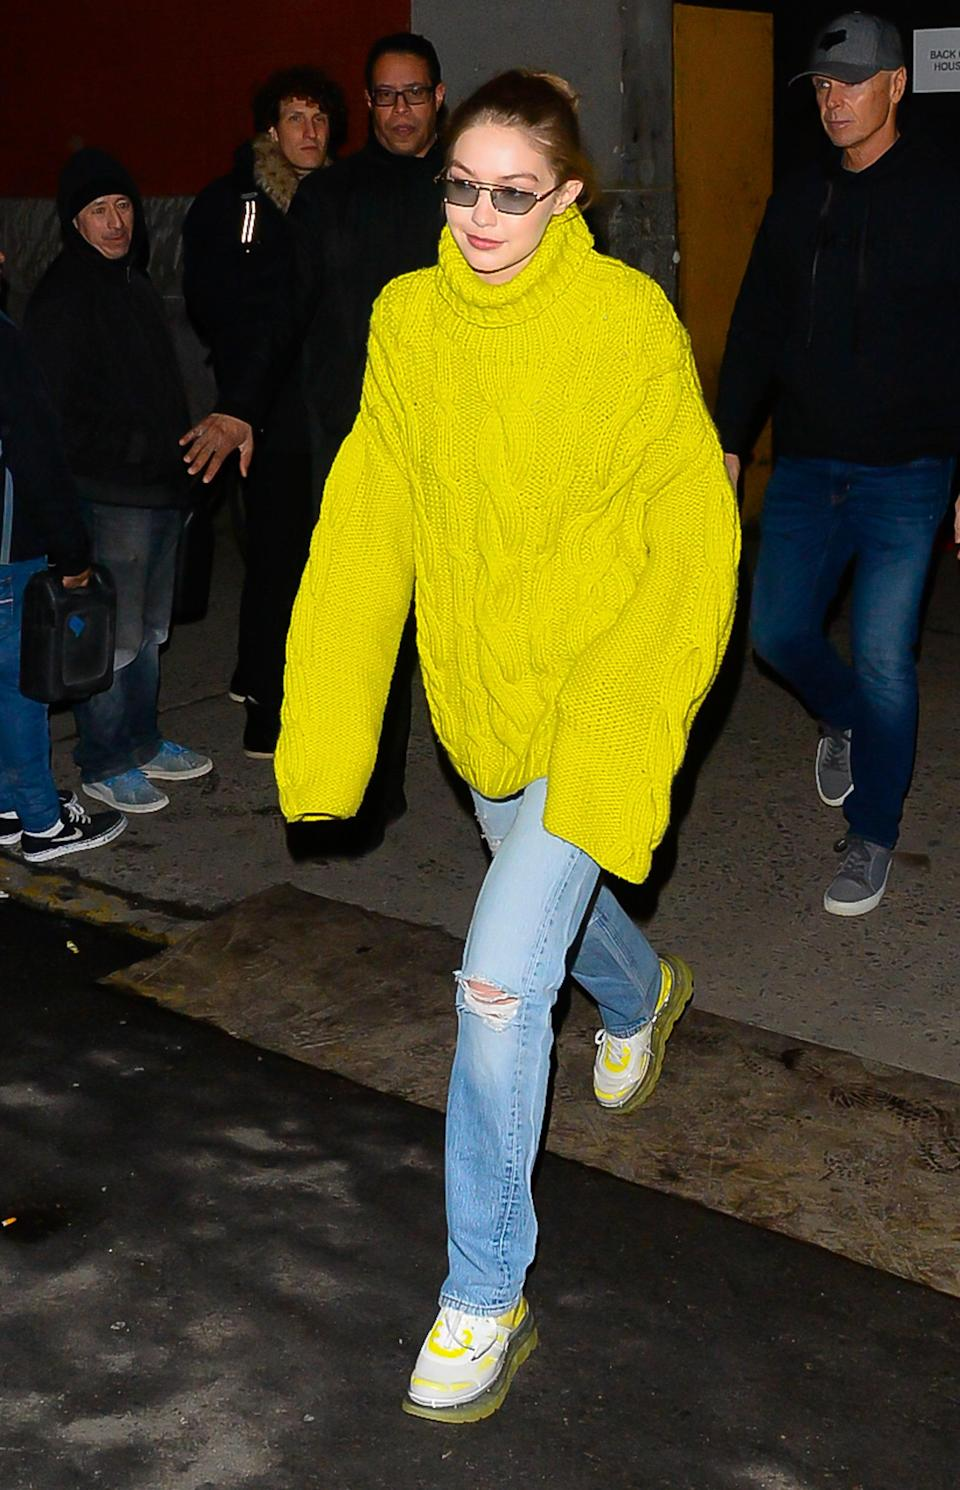 A girl's gotta stay cozy — and match her footwear while doing it! Coming off the tail end of the tiny sunglasses trend, Gigi stepped out in a mega-long sleeved electric yellow cable-knit turtleneck. The perfect accessories for sweater days? Jeans and sneaks, obvi.